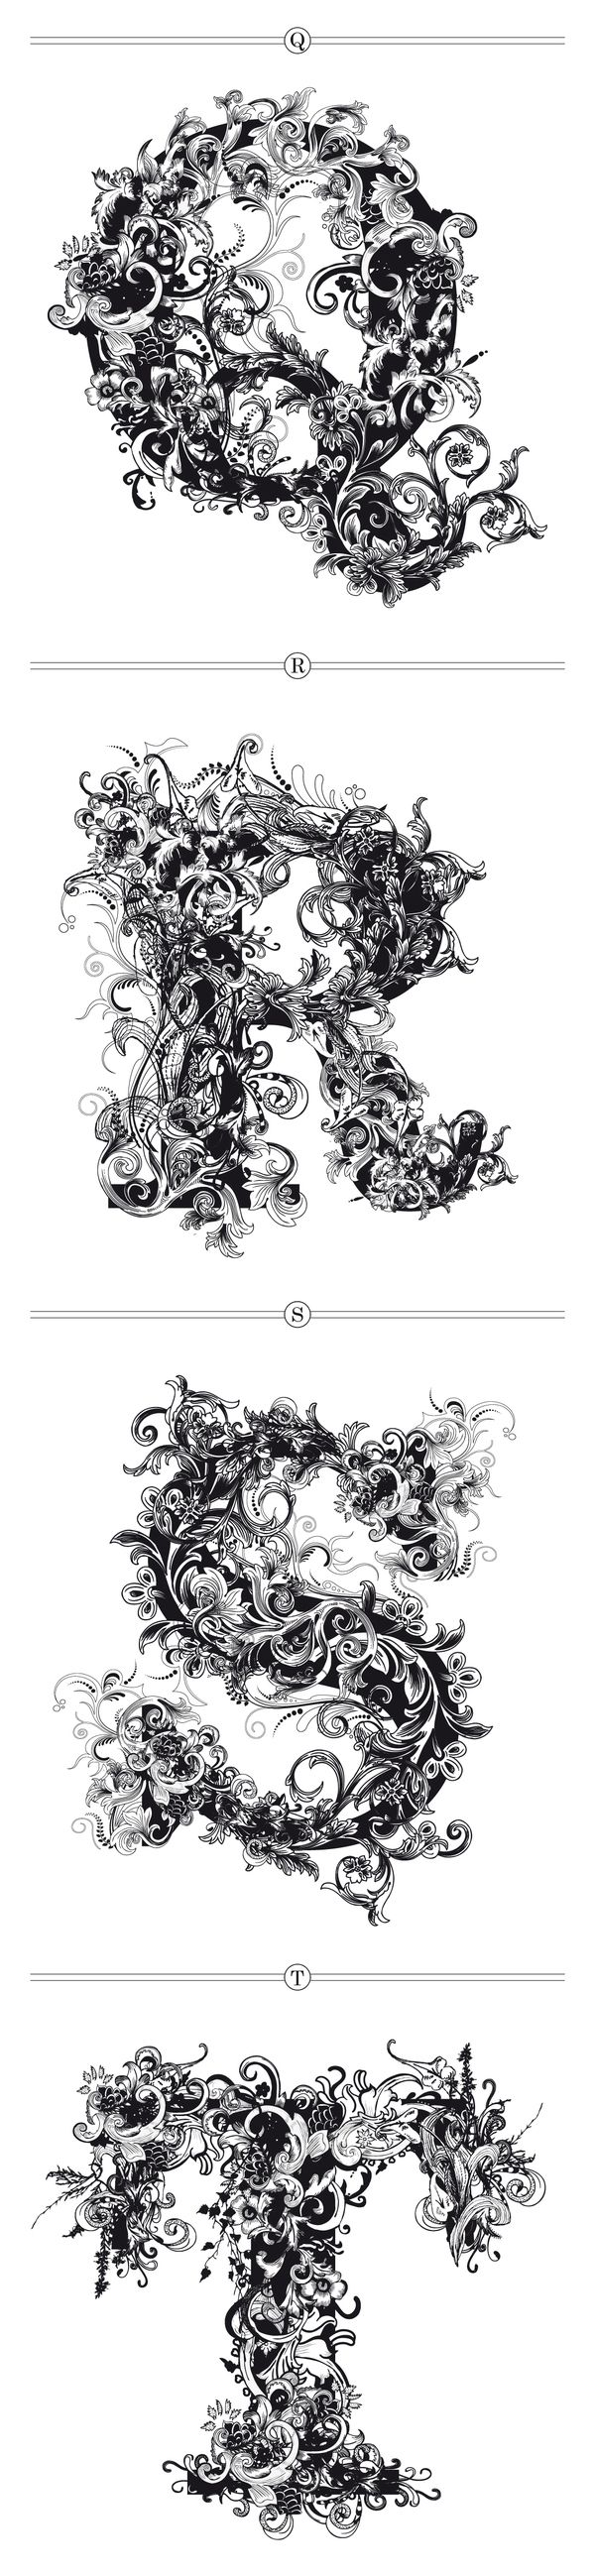 BRUSHWOOD by Riccardo Sabatini, via Behance